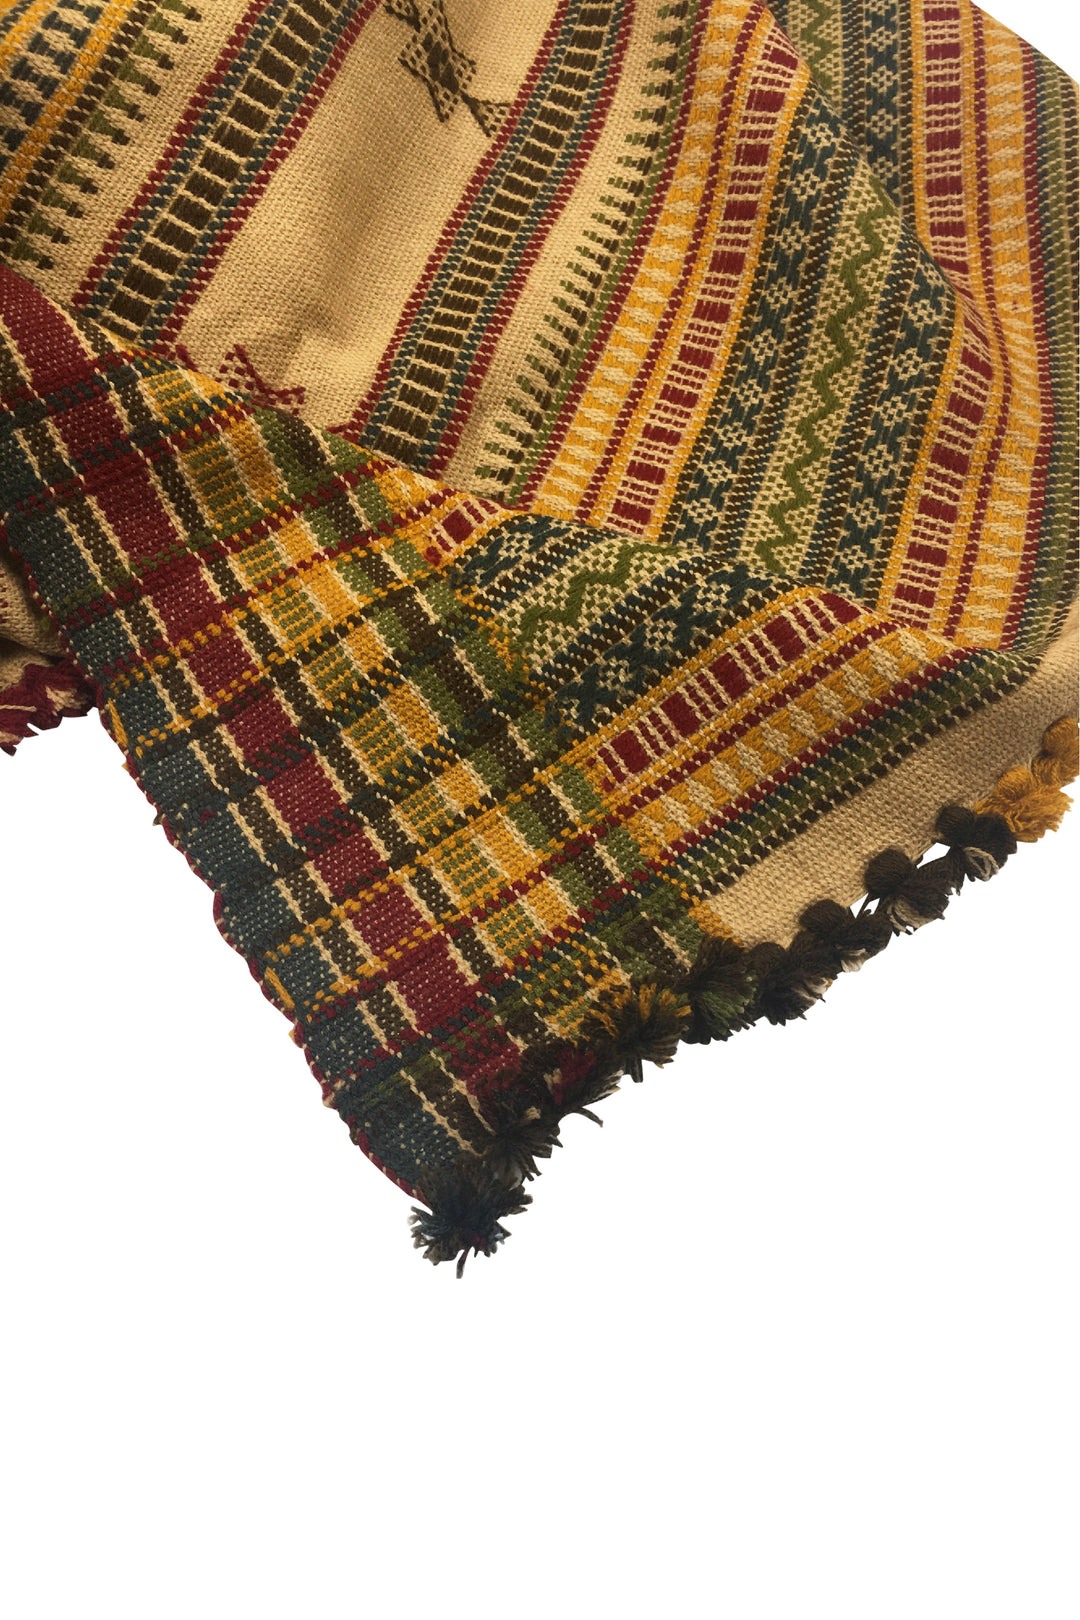 Kutch embroidered Wool Shawl Kofee